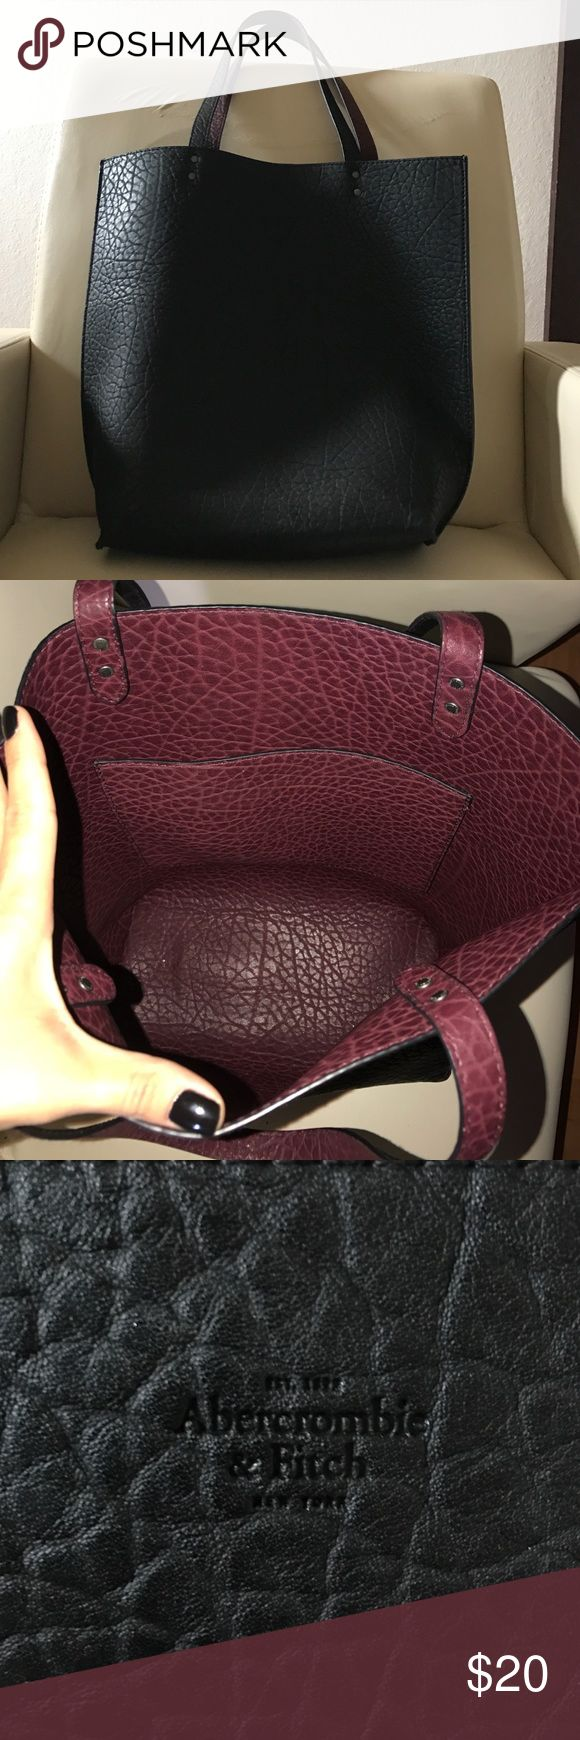 Abercrombie & Fitch handbag Abercrombie & Fitch handbag. Reversible. Black and Burgundy. Shoulder handbag. Very spacious. Comfortable and calls a lot of attention. Perfect for any occasion. Work, beach, daily handbag. Abercrombie & Fitch Bags Shoulder Bags